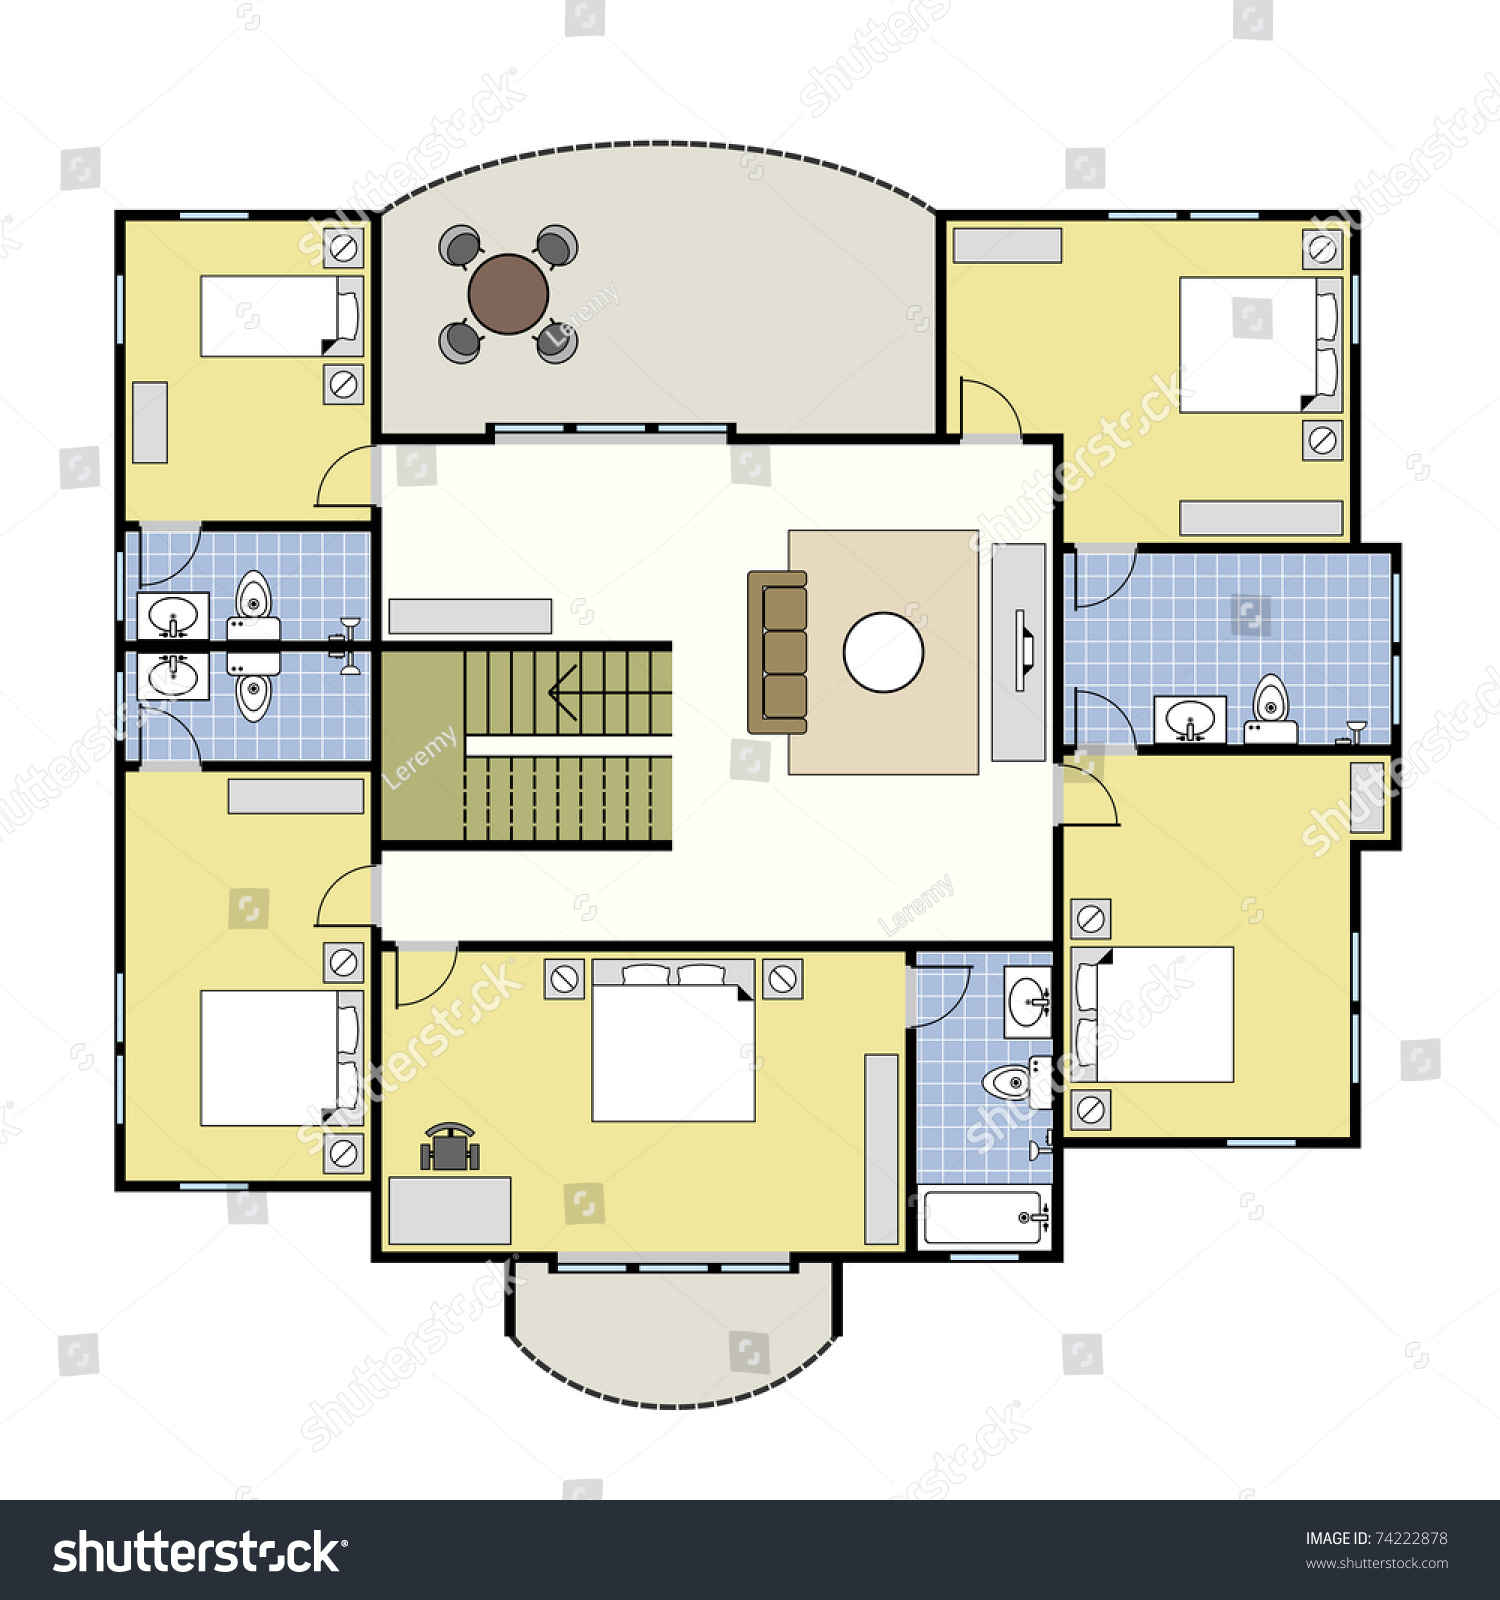 First second floor plan floorplan house stock vector for Stock floor plans